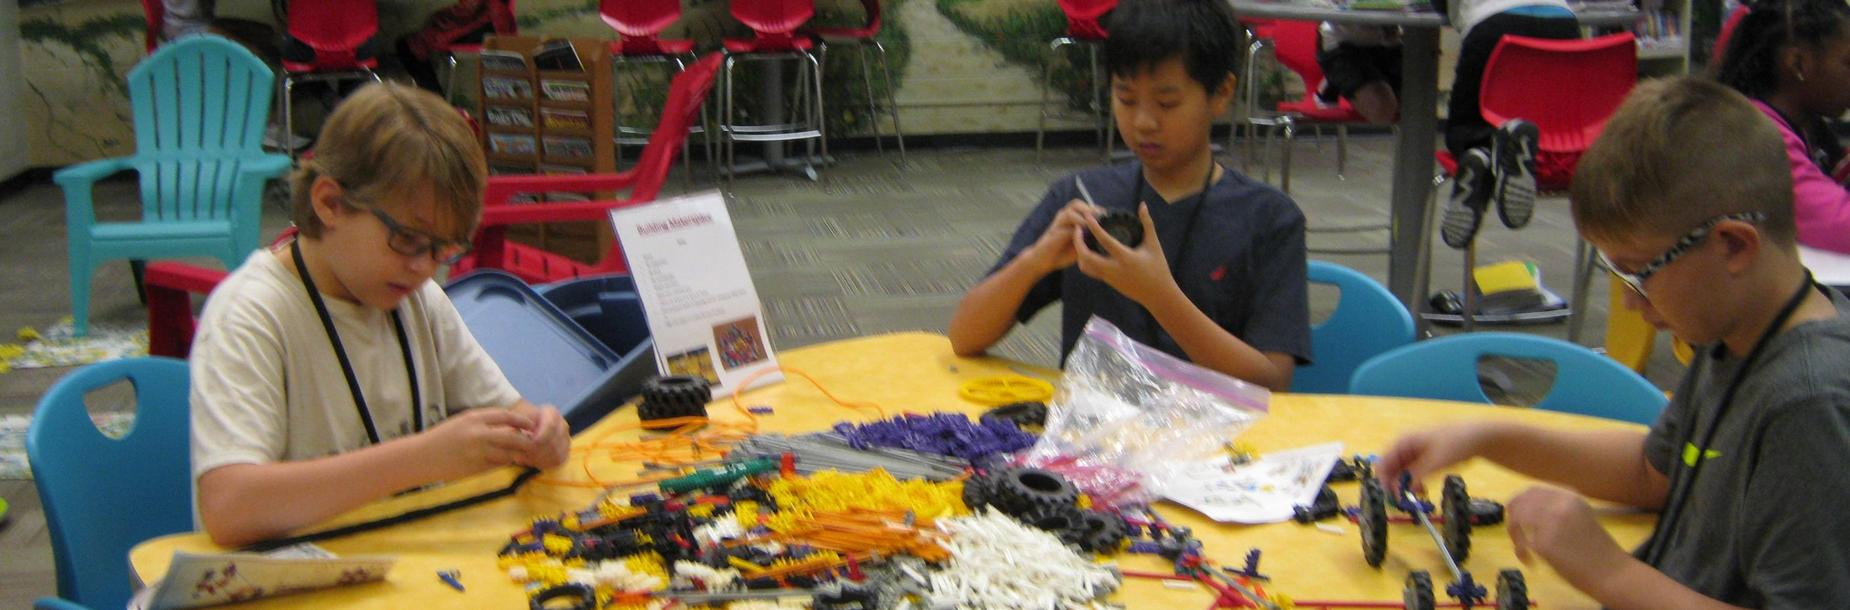 students building in the learning commons makerspace